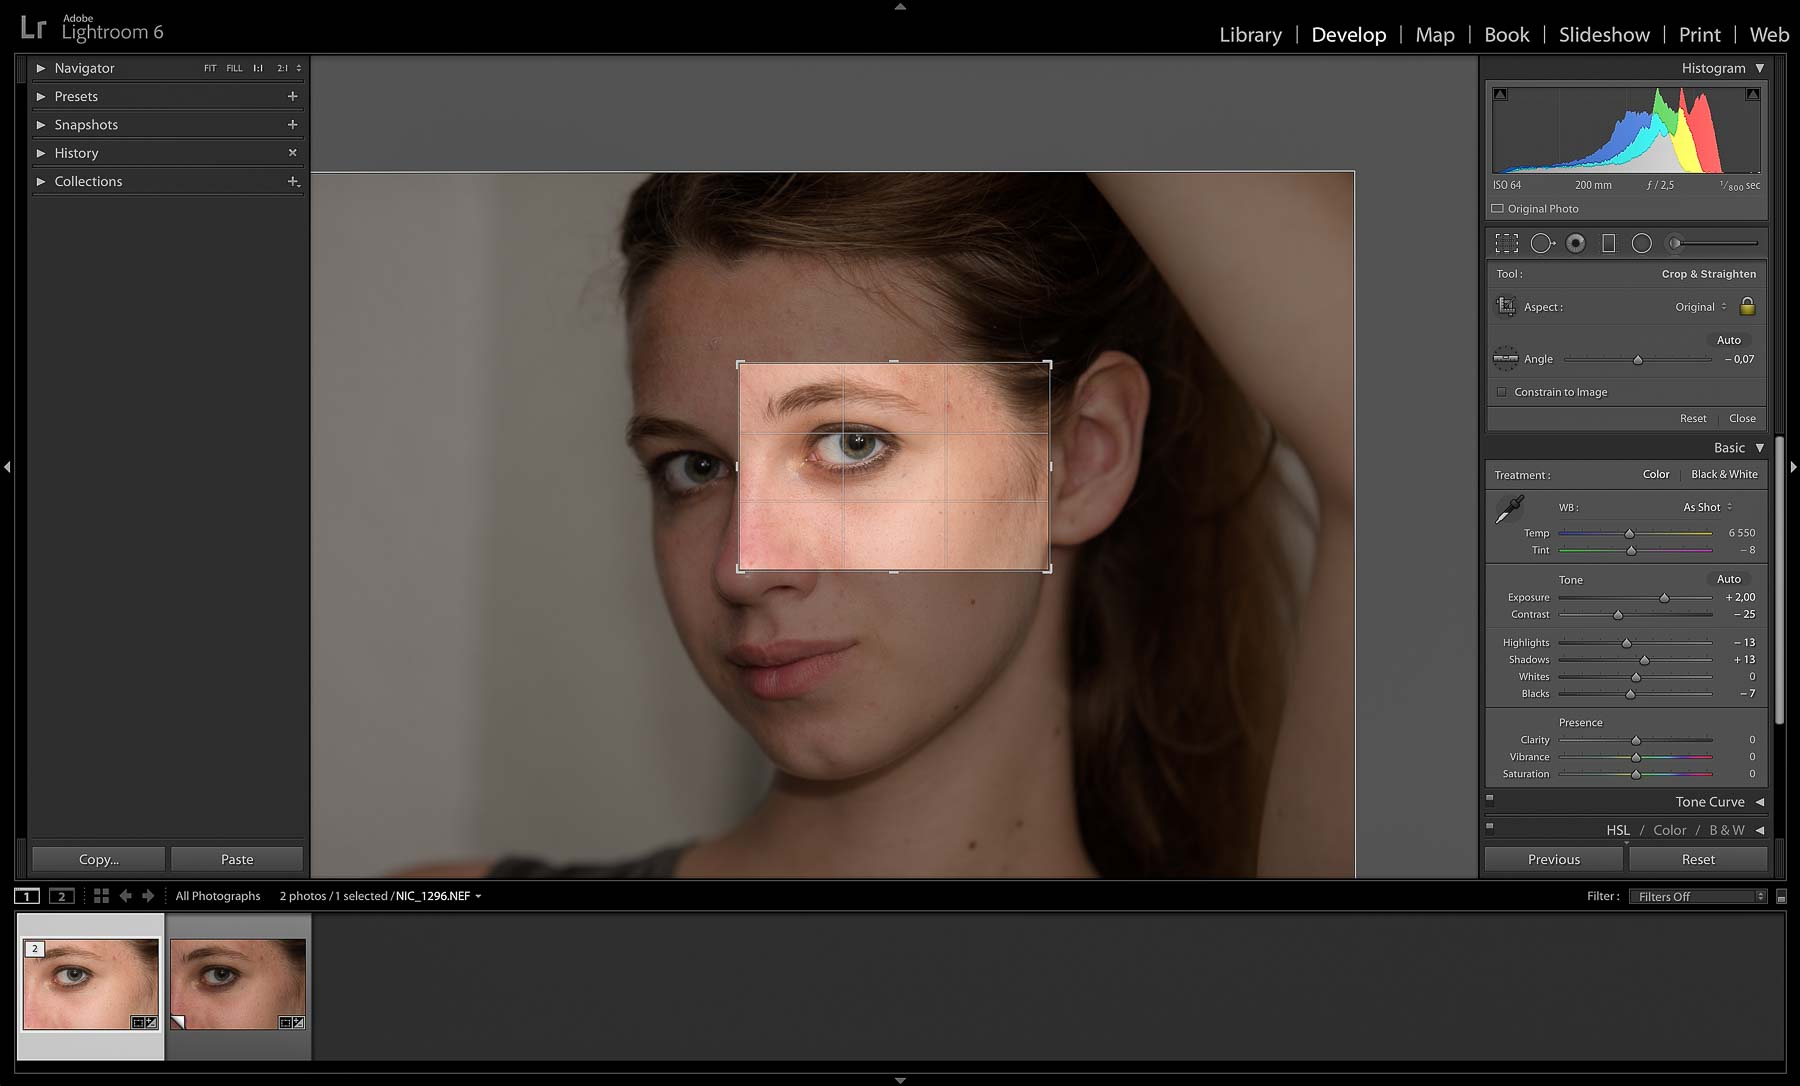 RAW Convertor | Photoshop Skin Retouching • Portrait Retouching Workflow